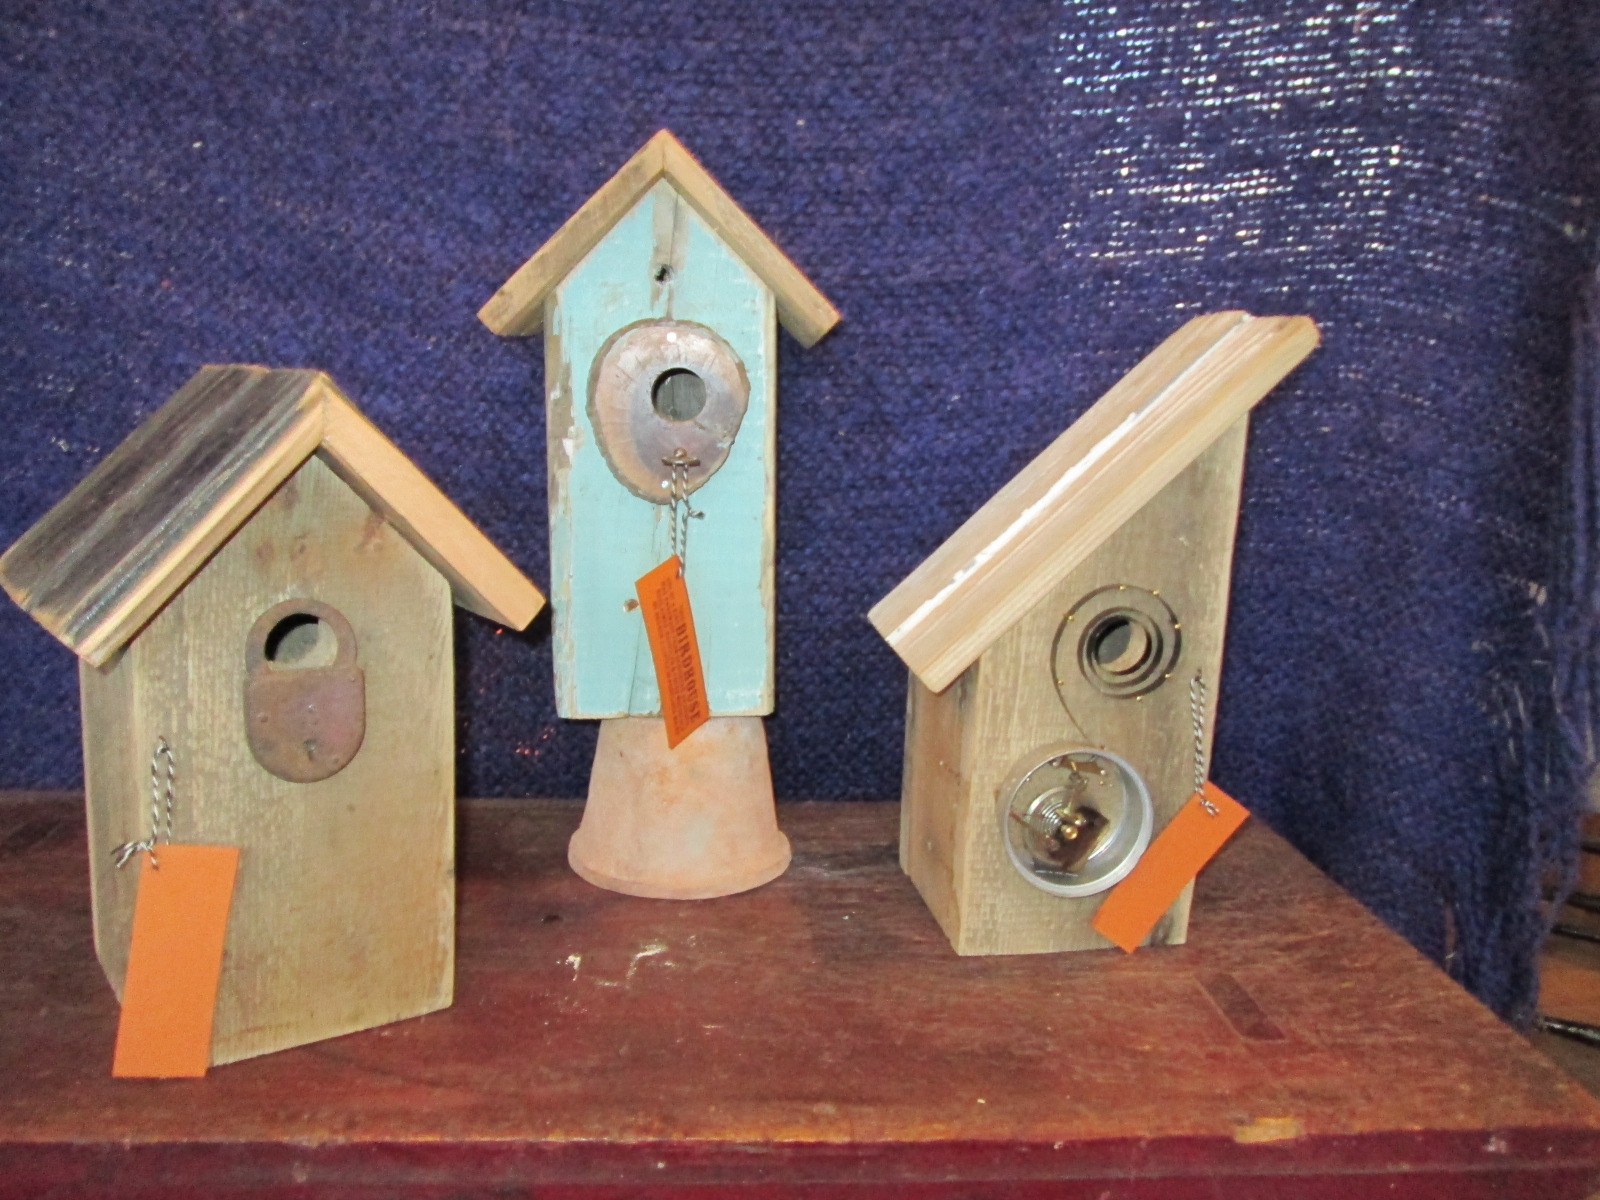 Reuben Little's birdhouses made from recycled materials.